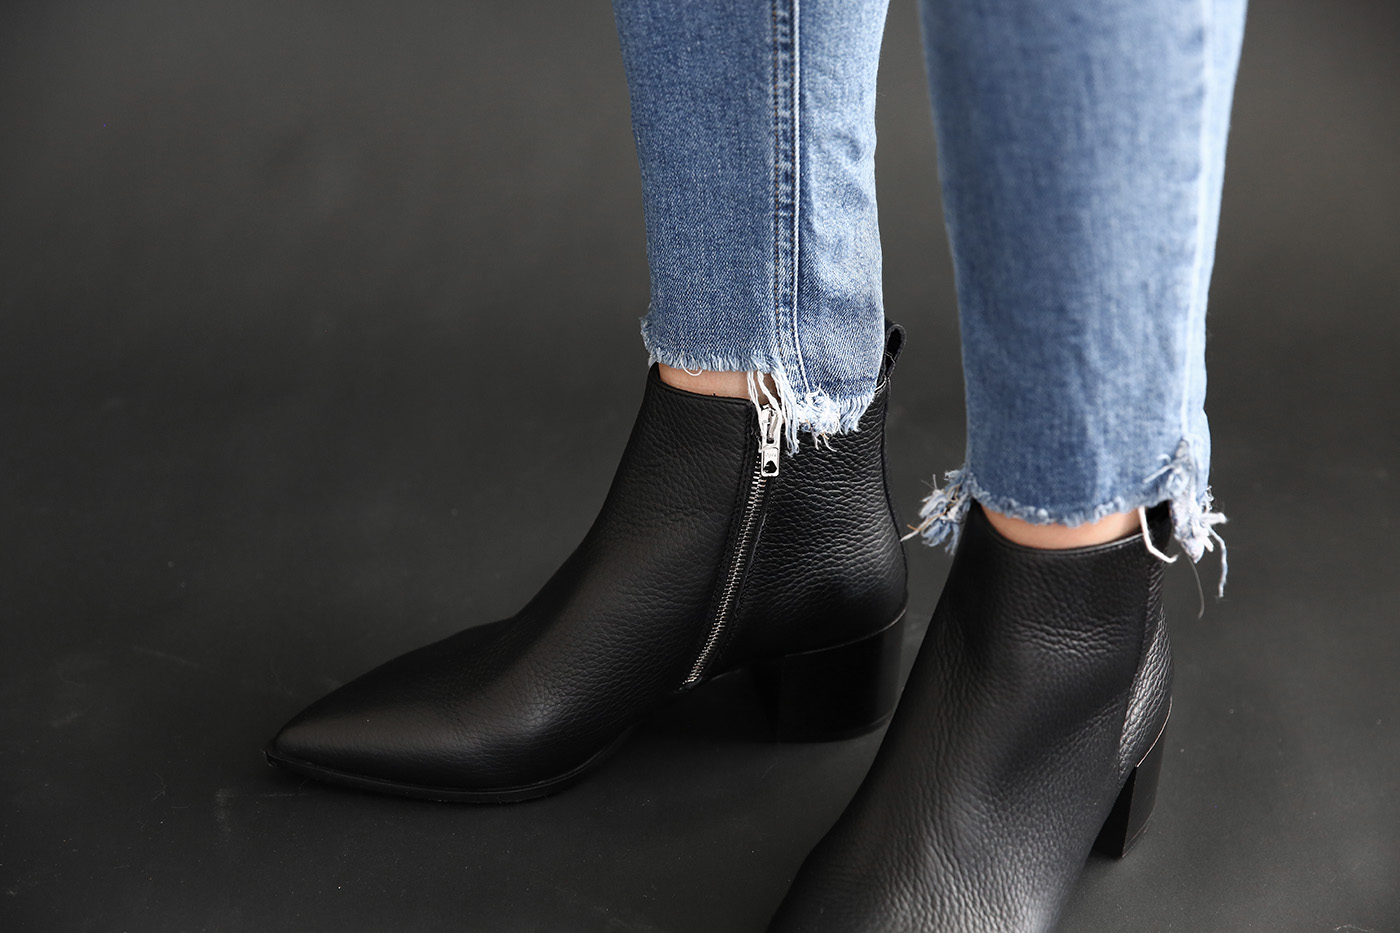 everlane boss boot review